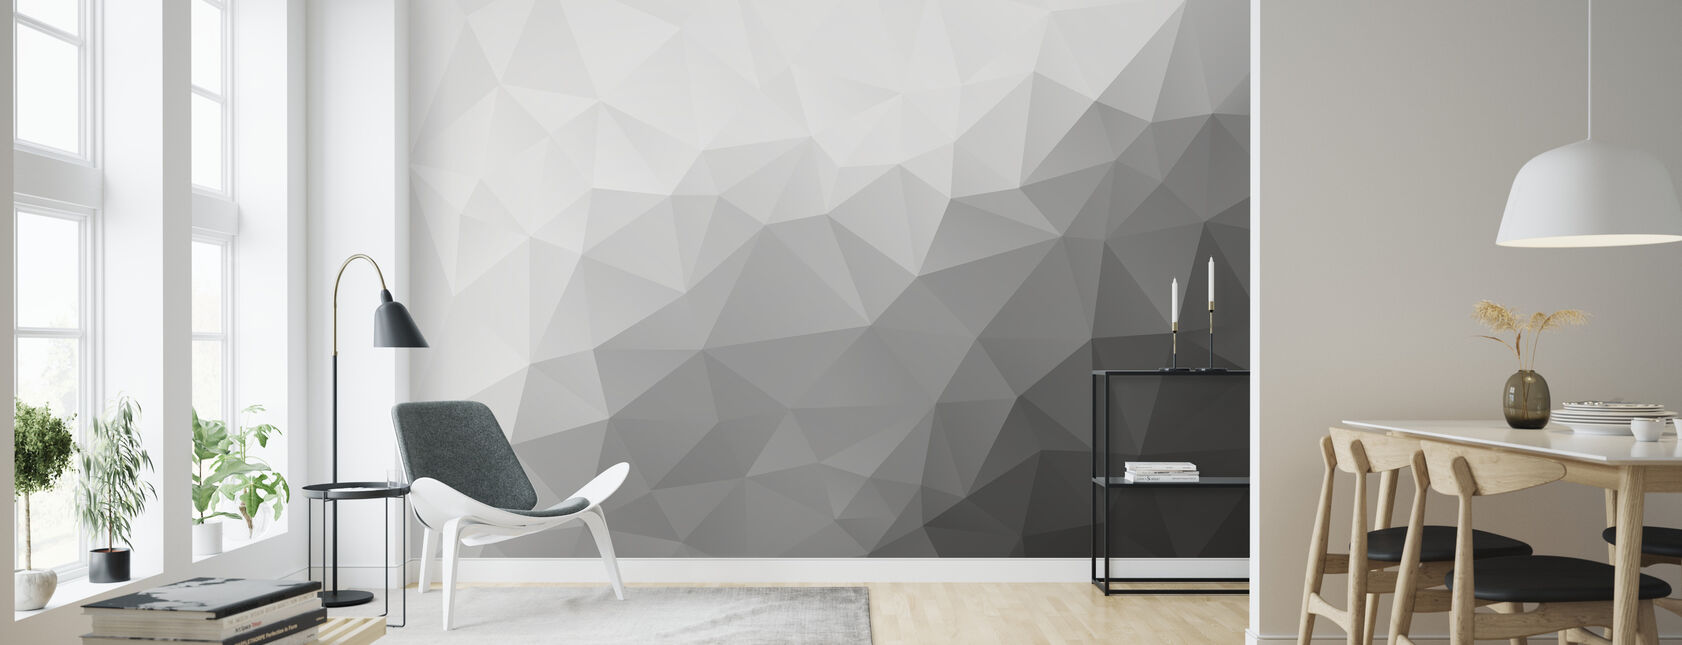 Polygonal Grey Shades 2 - Wallpaper - Living Room